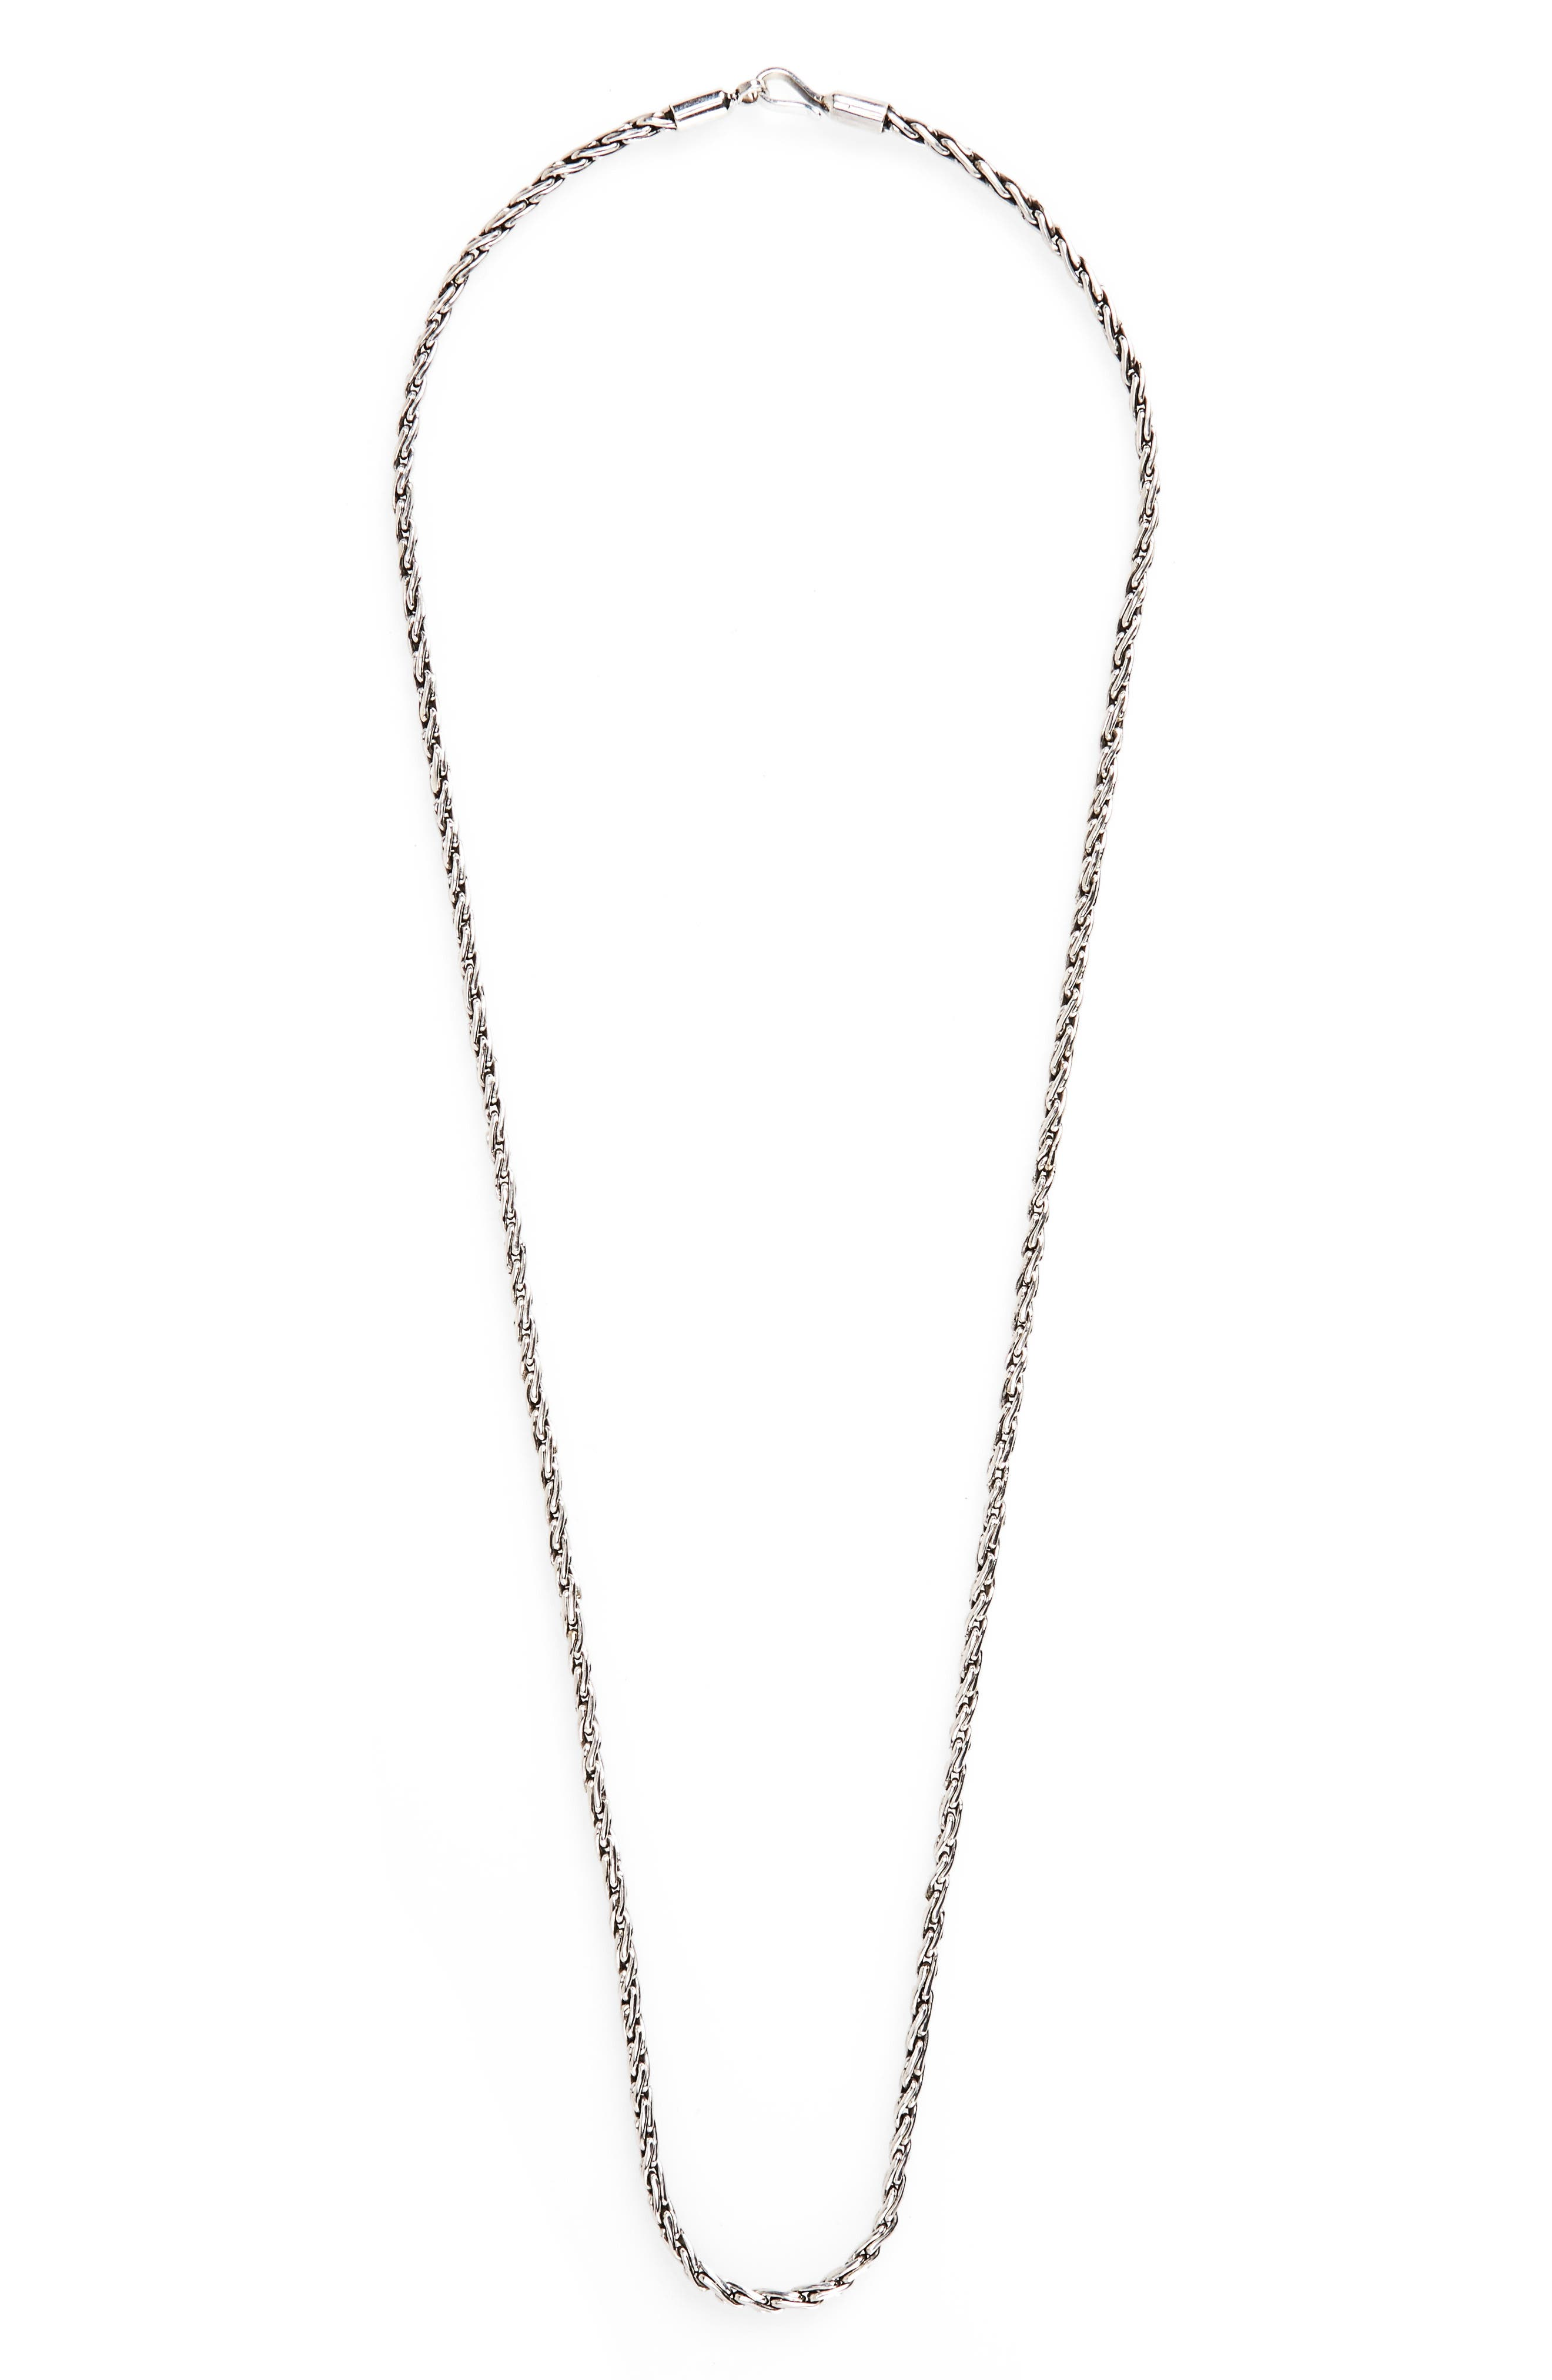 Main Image - Caputo & Co. Sterling Silver Rope Chain Necklace